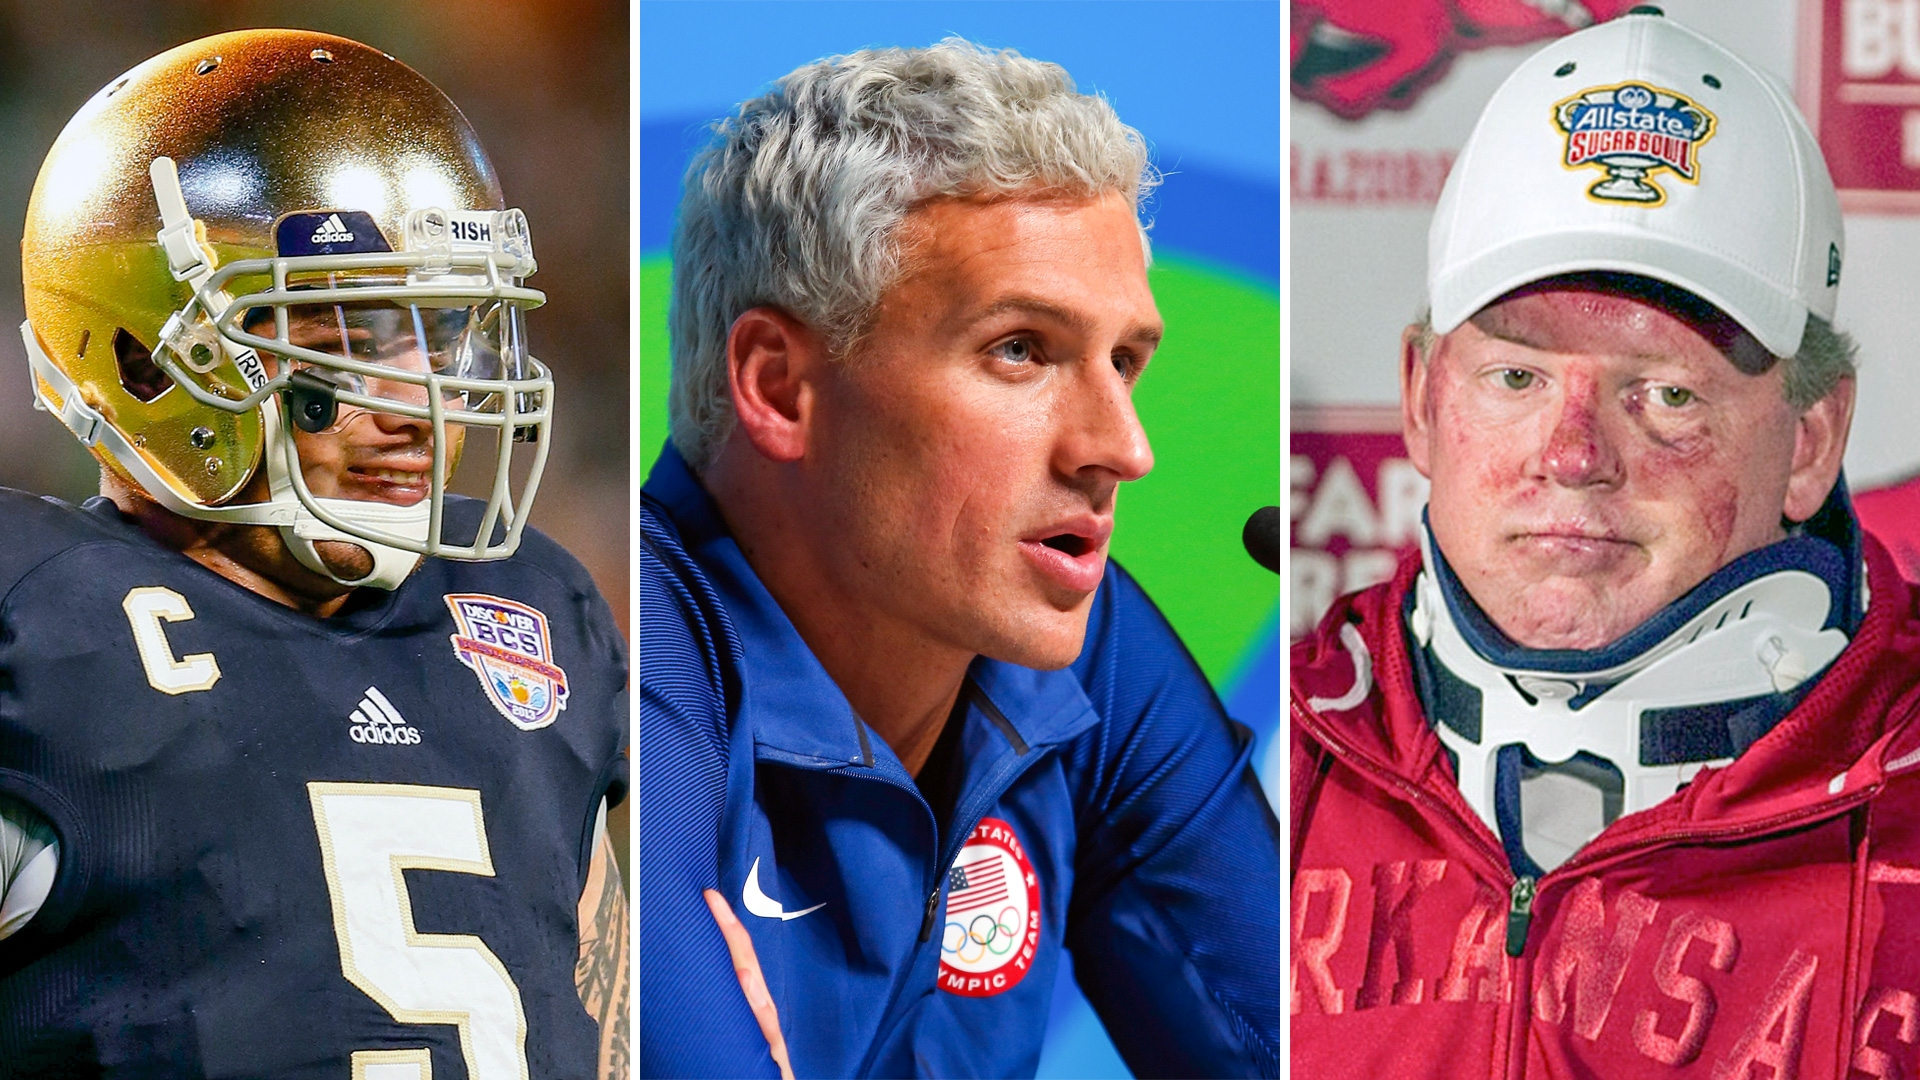 Ryan lochte isn t the only sports figure involved in a bizarre